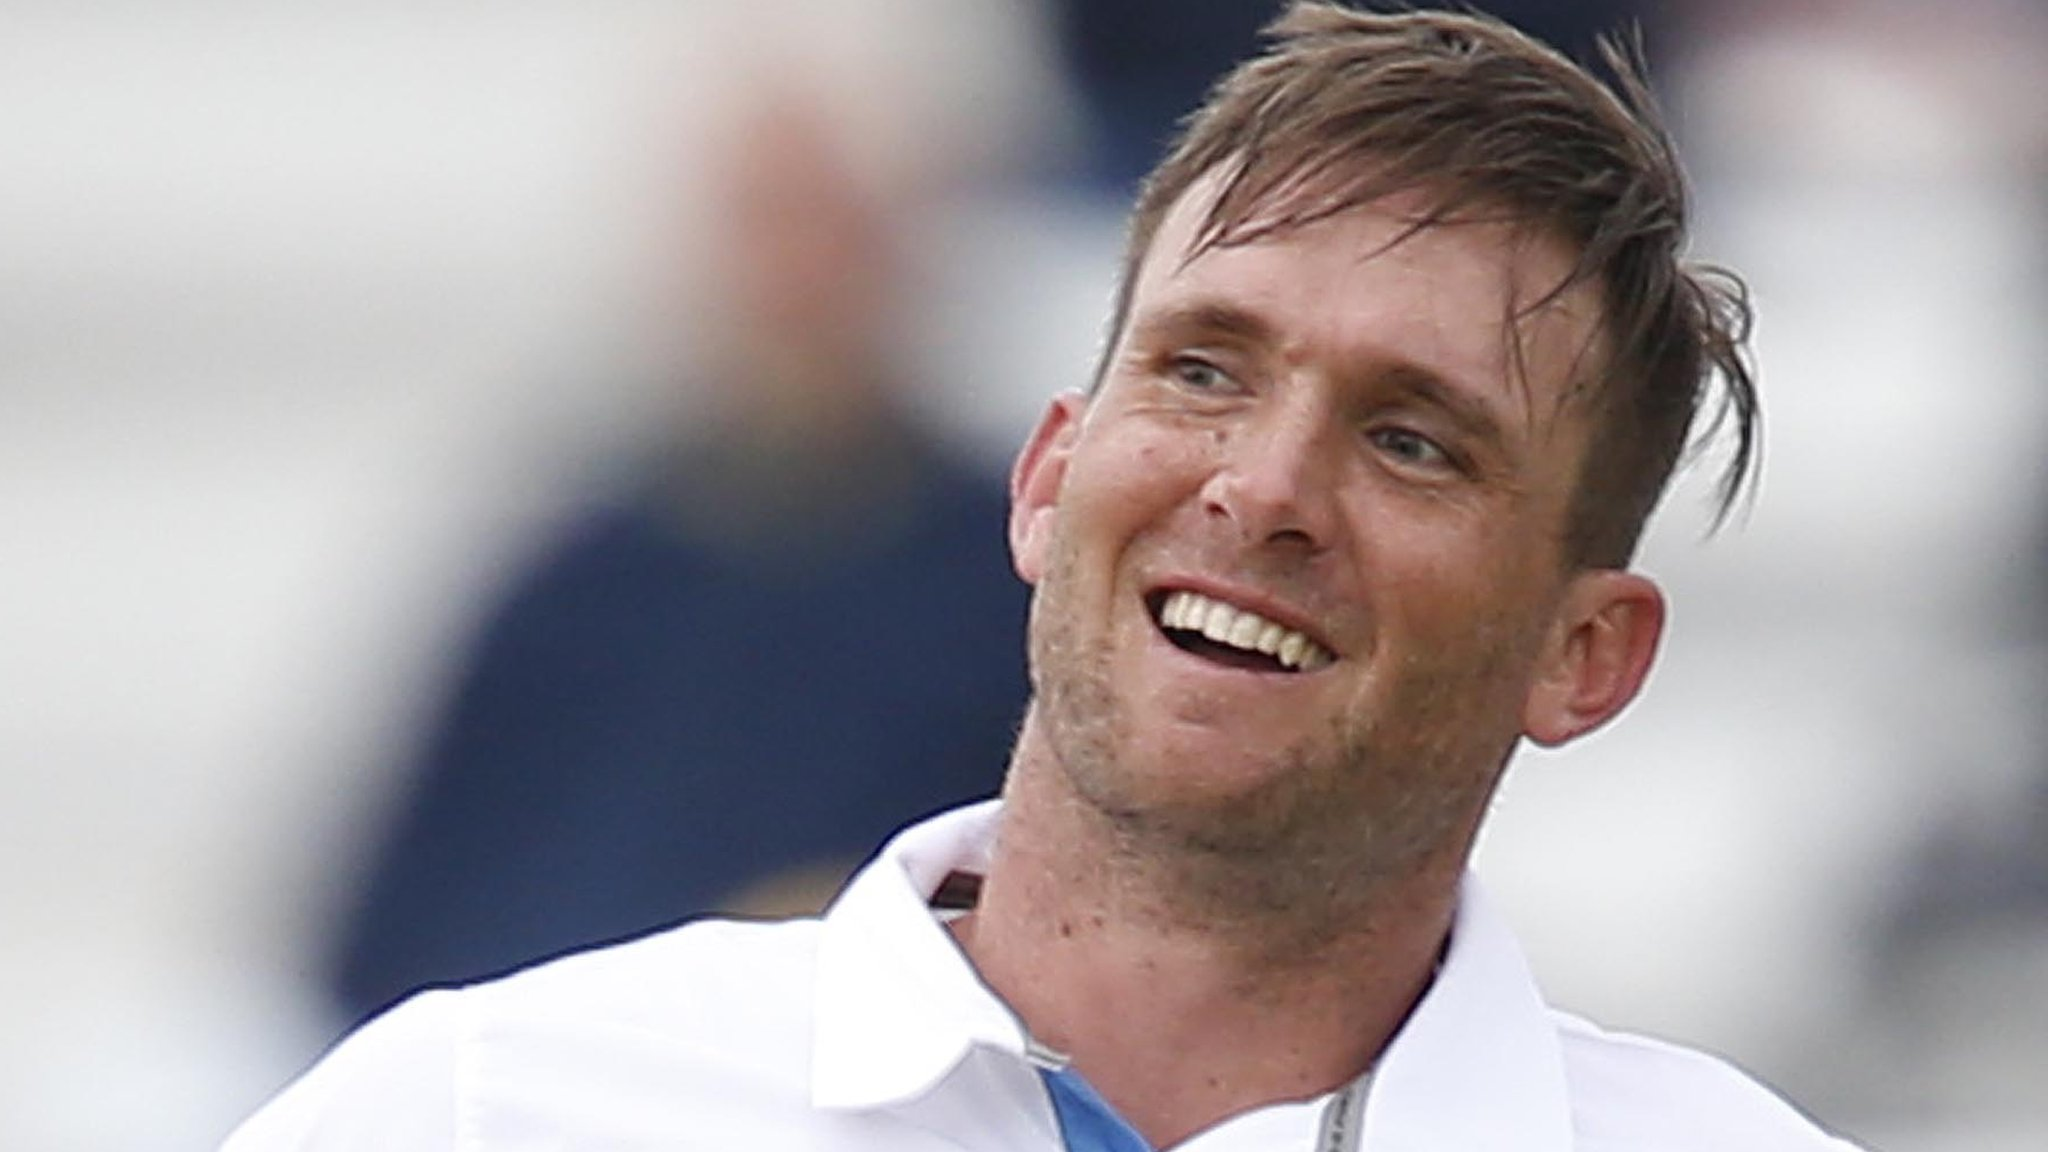 Derbyshire win first home County Championship game since 2014